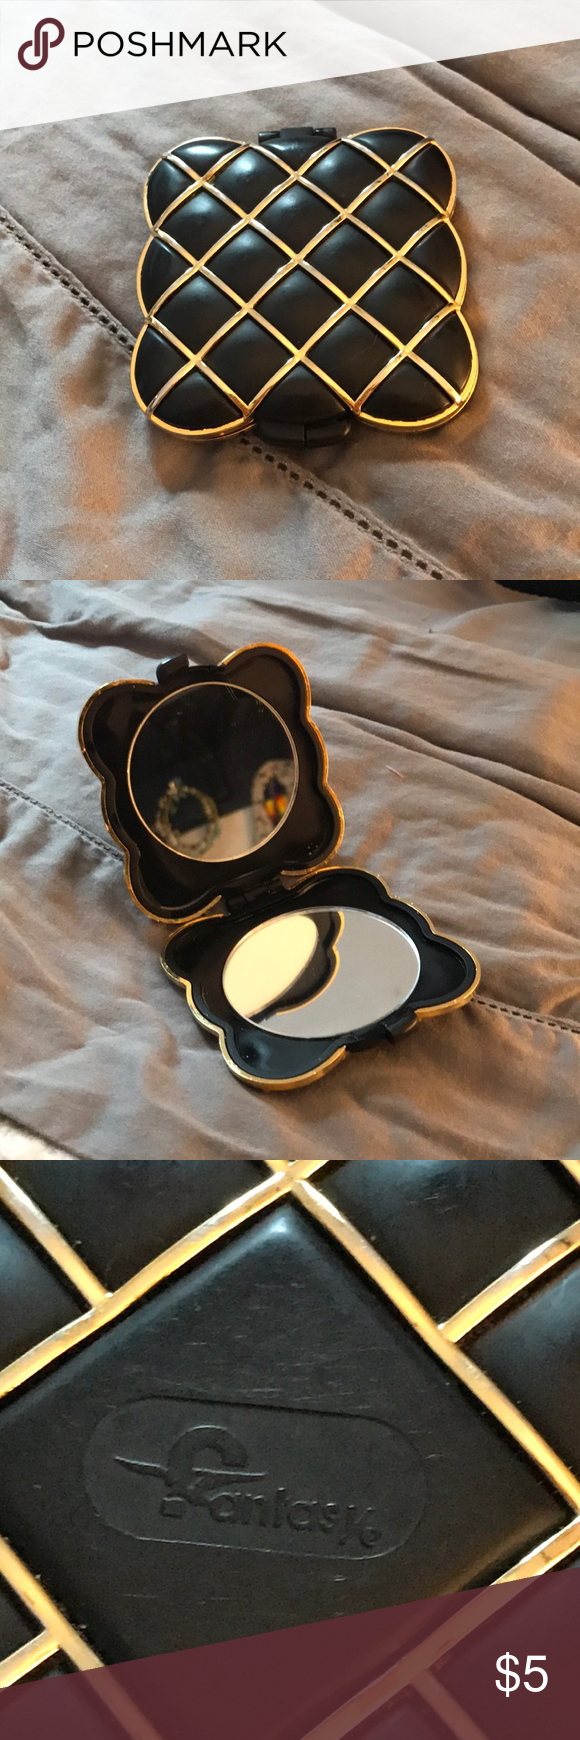 Black & Gold Compact Mirror Used, needs a new home in